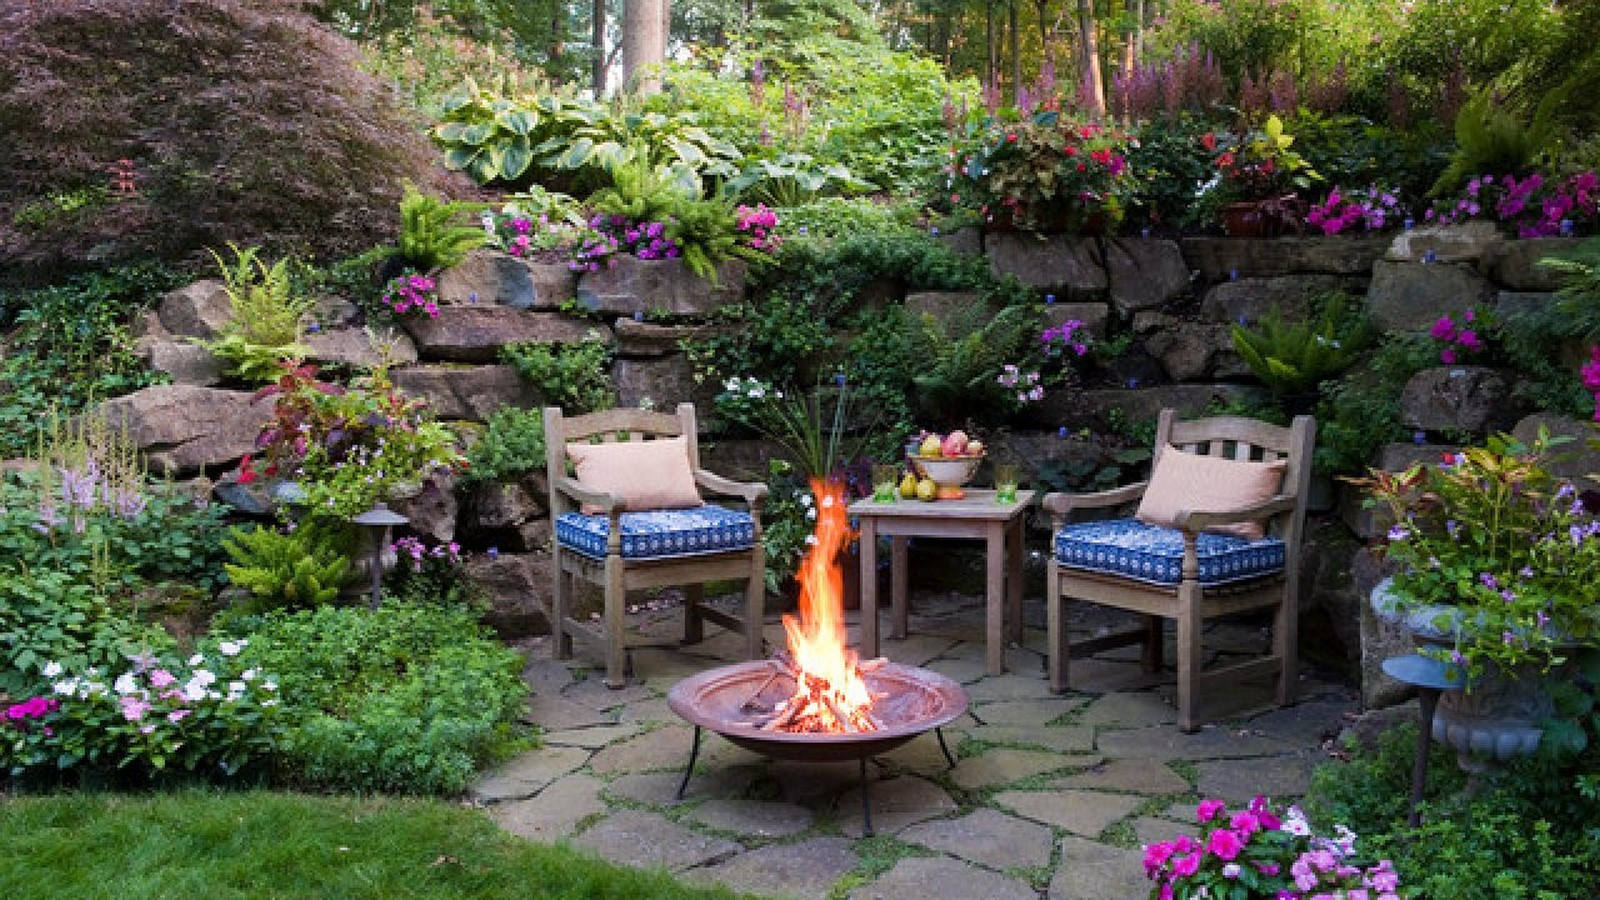 50 Ideas and Tips for Landscaping - Sheet3